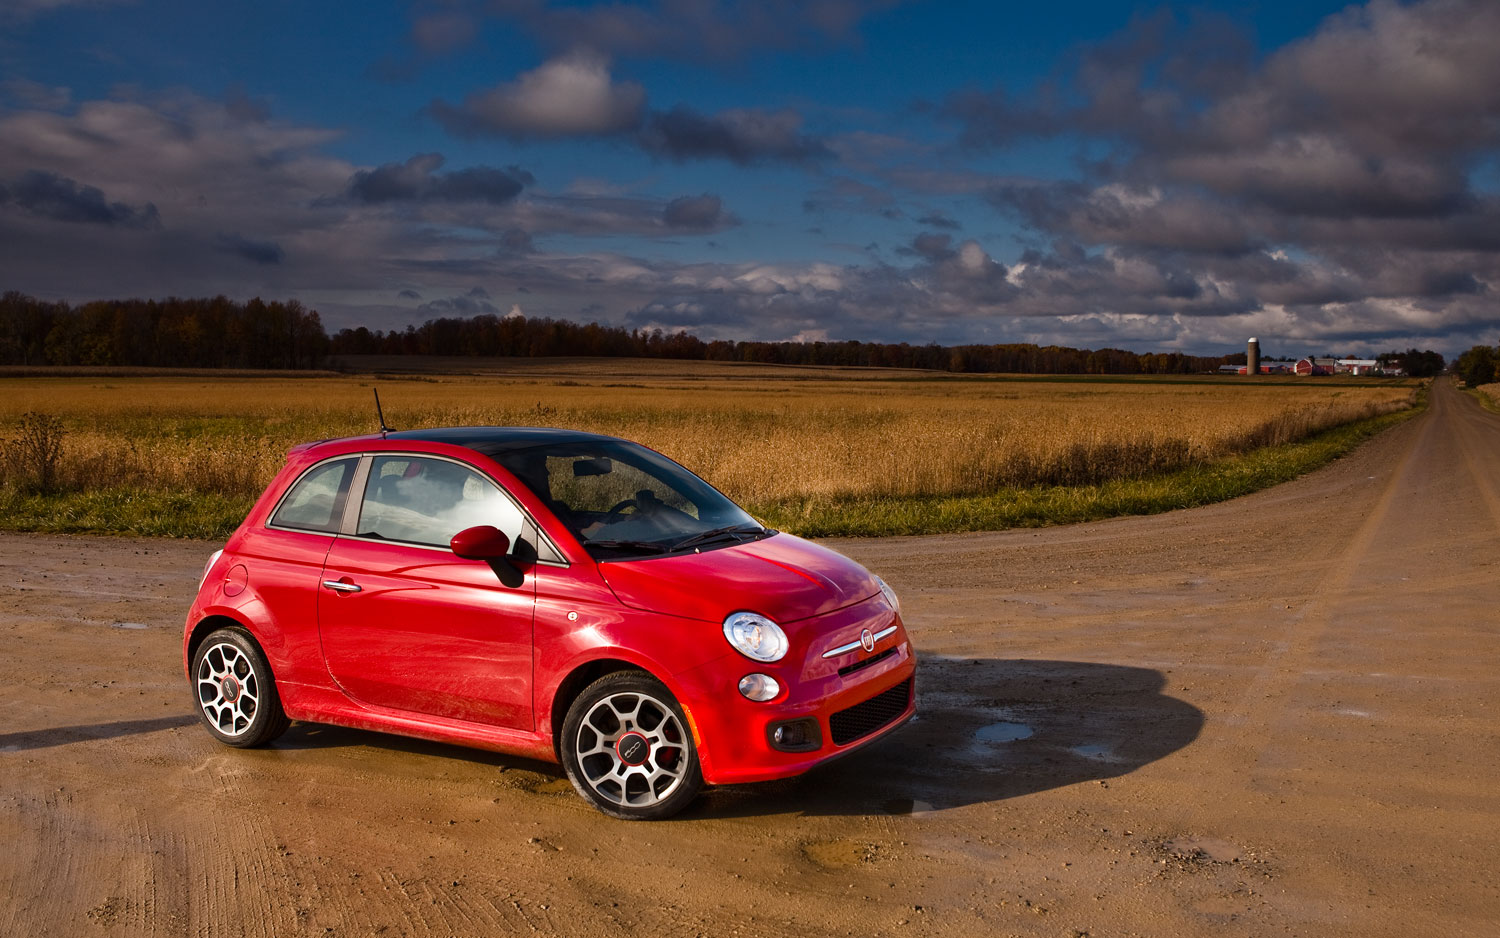 2011 Fiat 500 Front Left Side View In Field